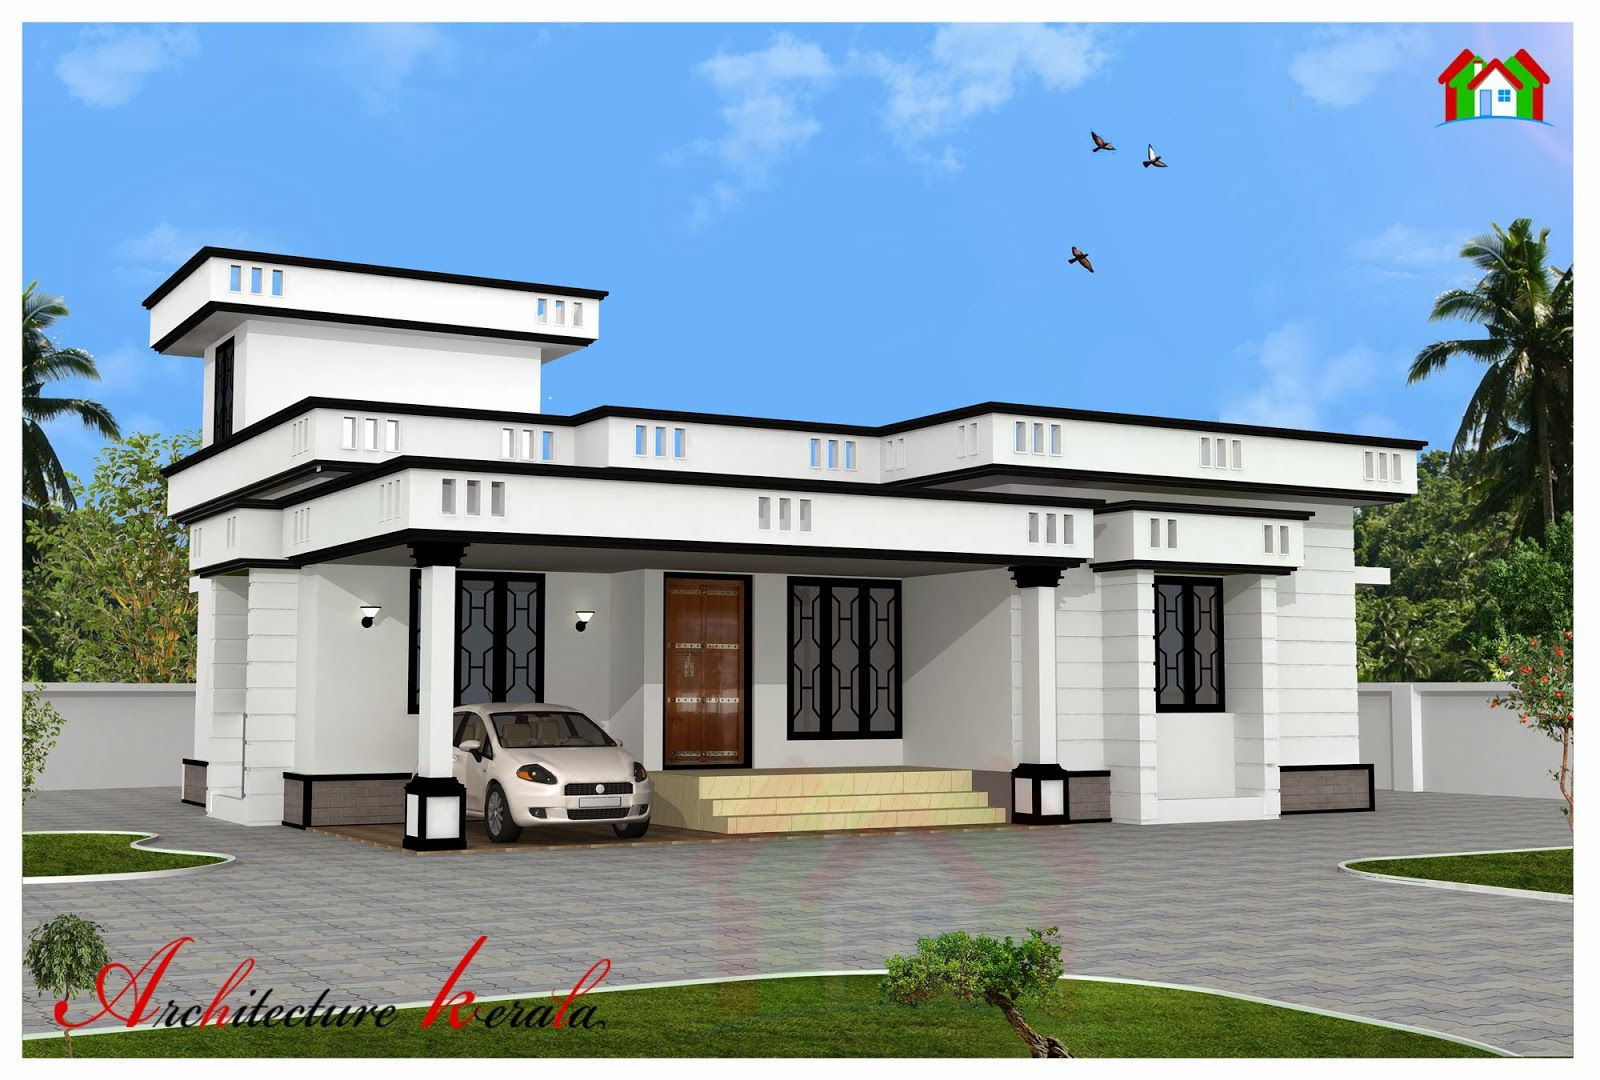 1200 Sq Ft House Elevation Model House Plan Normal House 1200 Sq Ft House